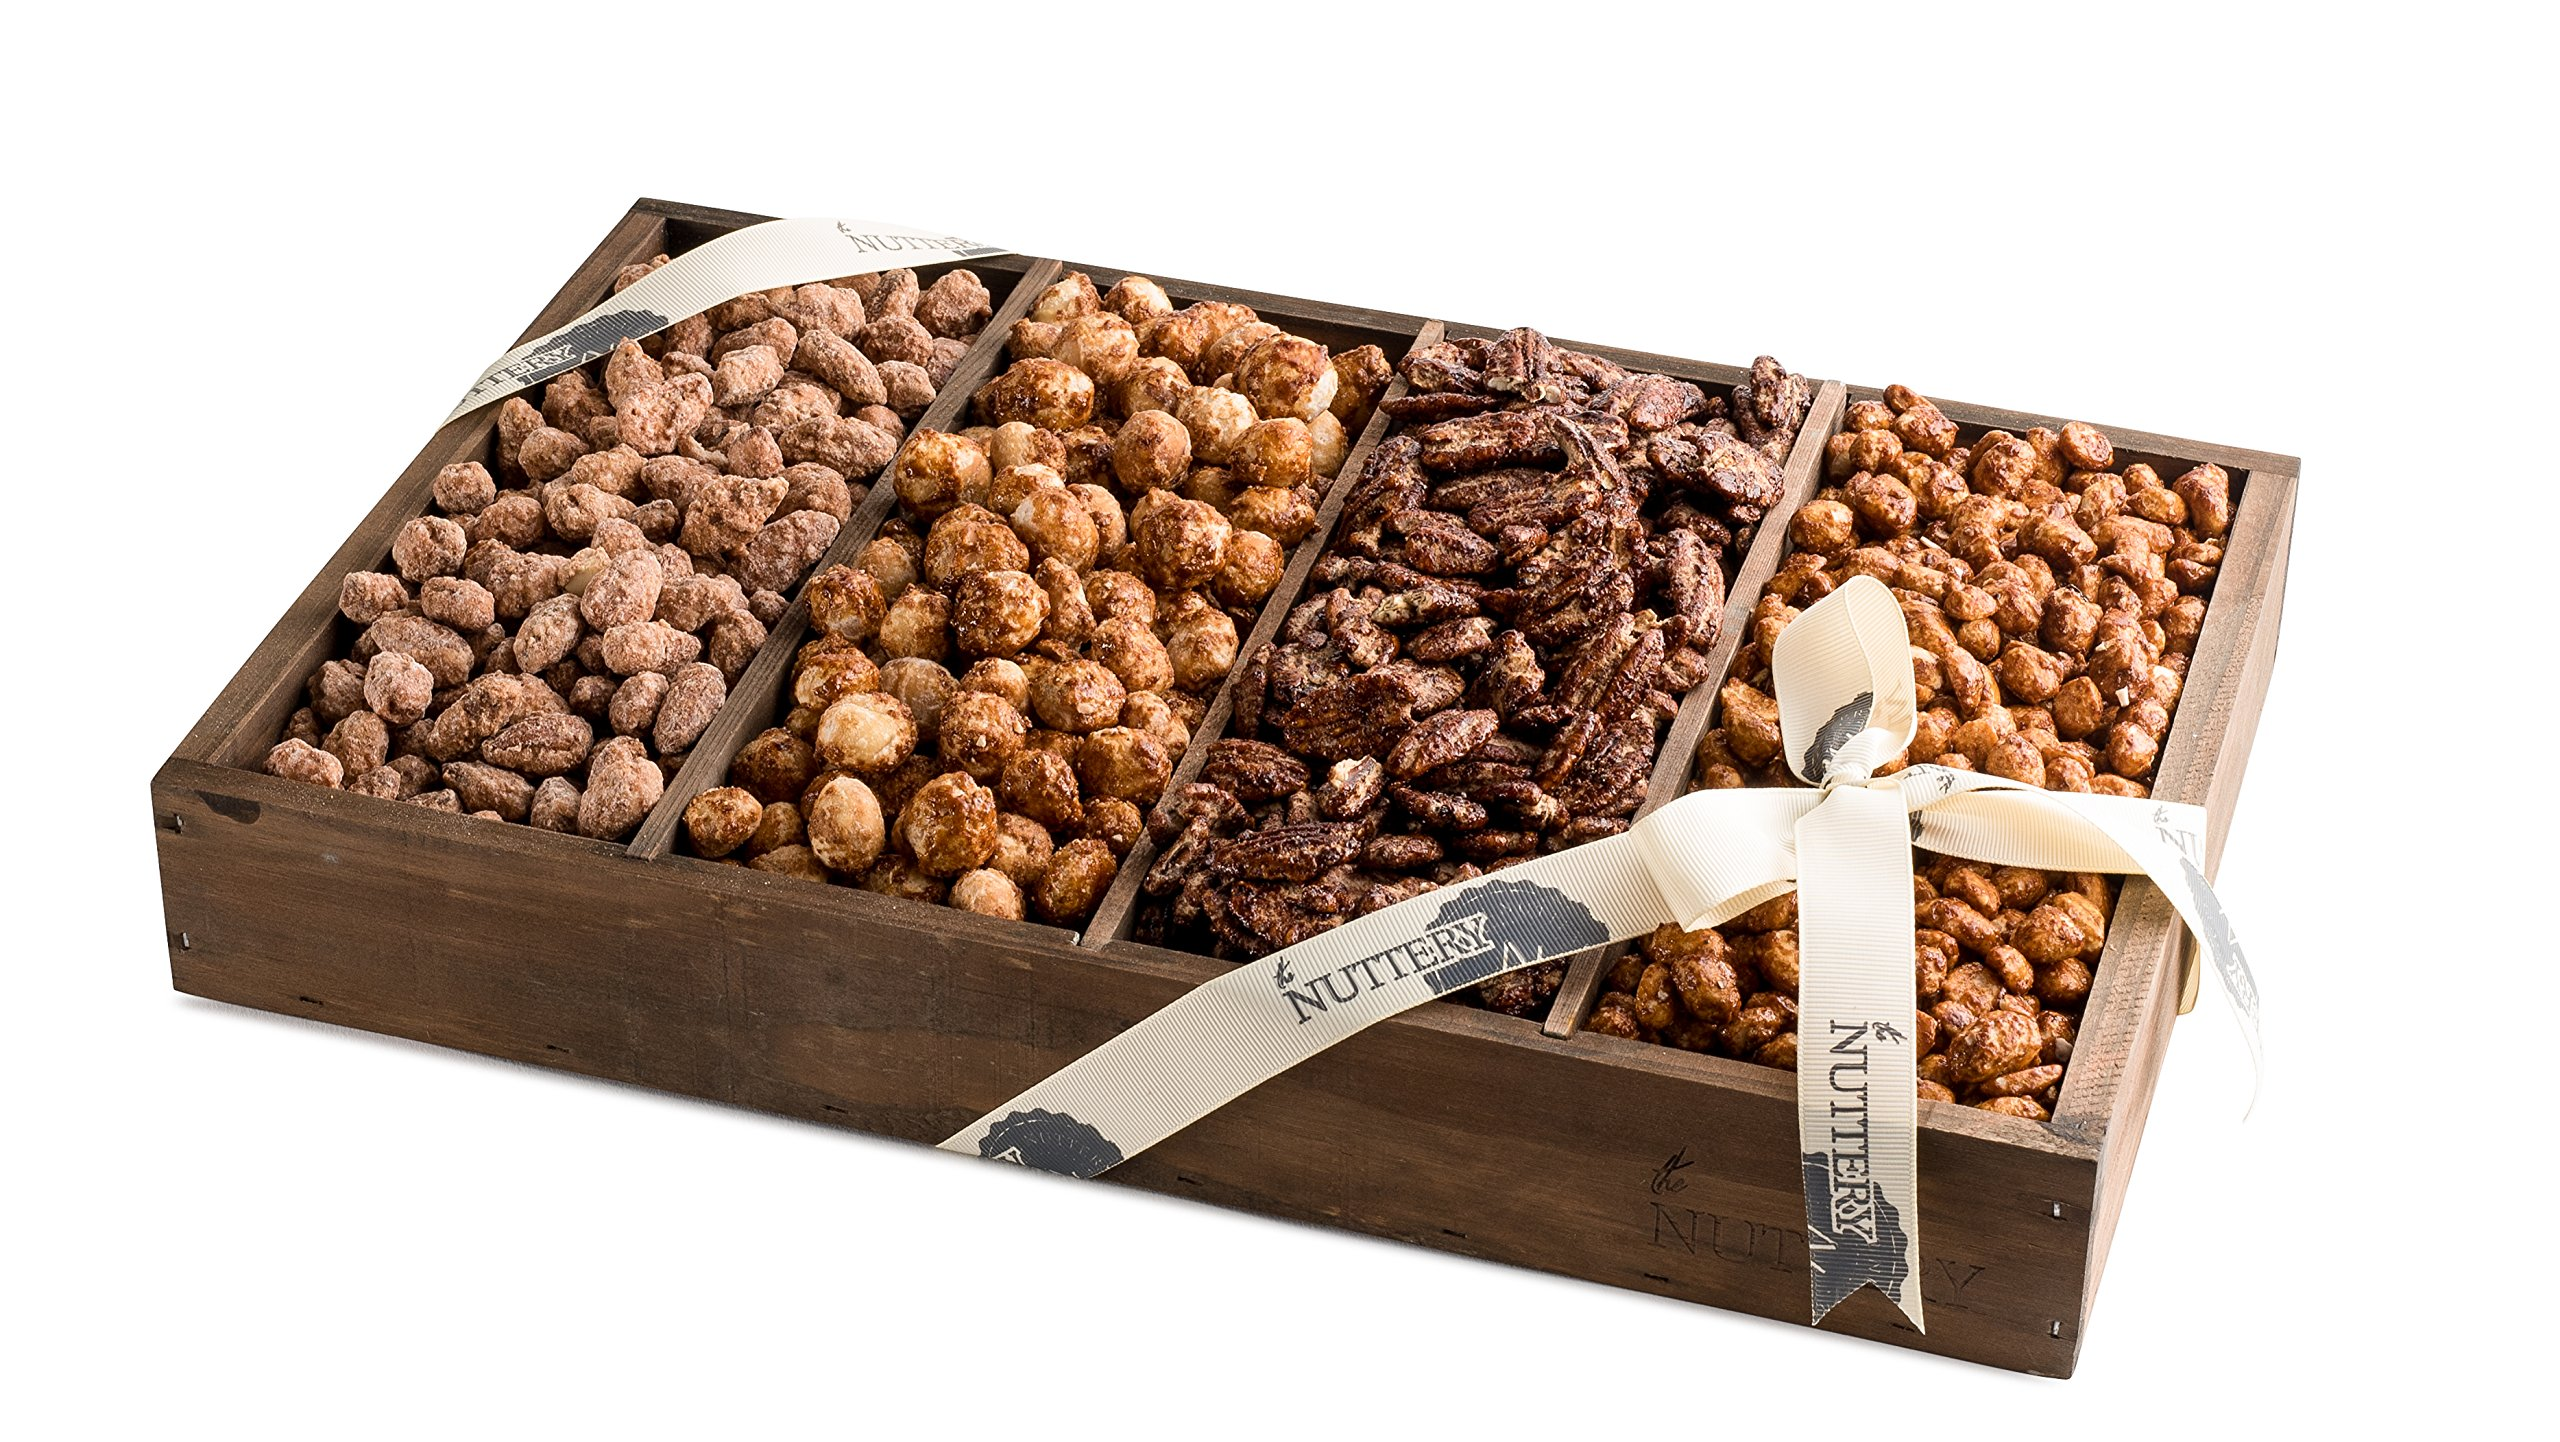 The Nuttery Premium Sweet Glazed Nut Wooden Gift Tray